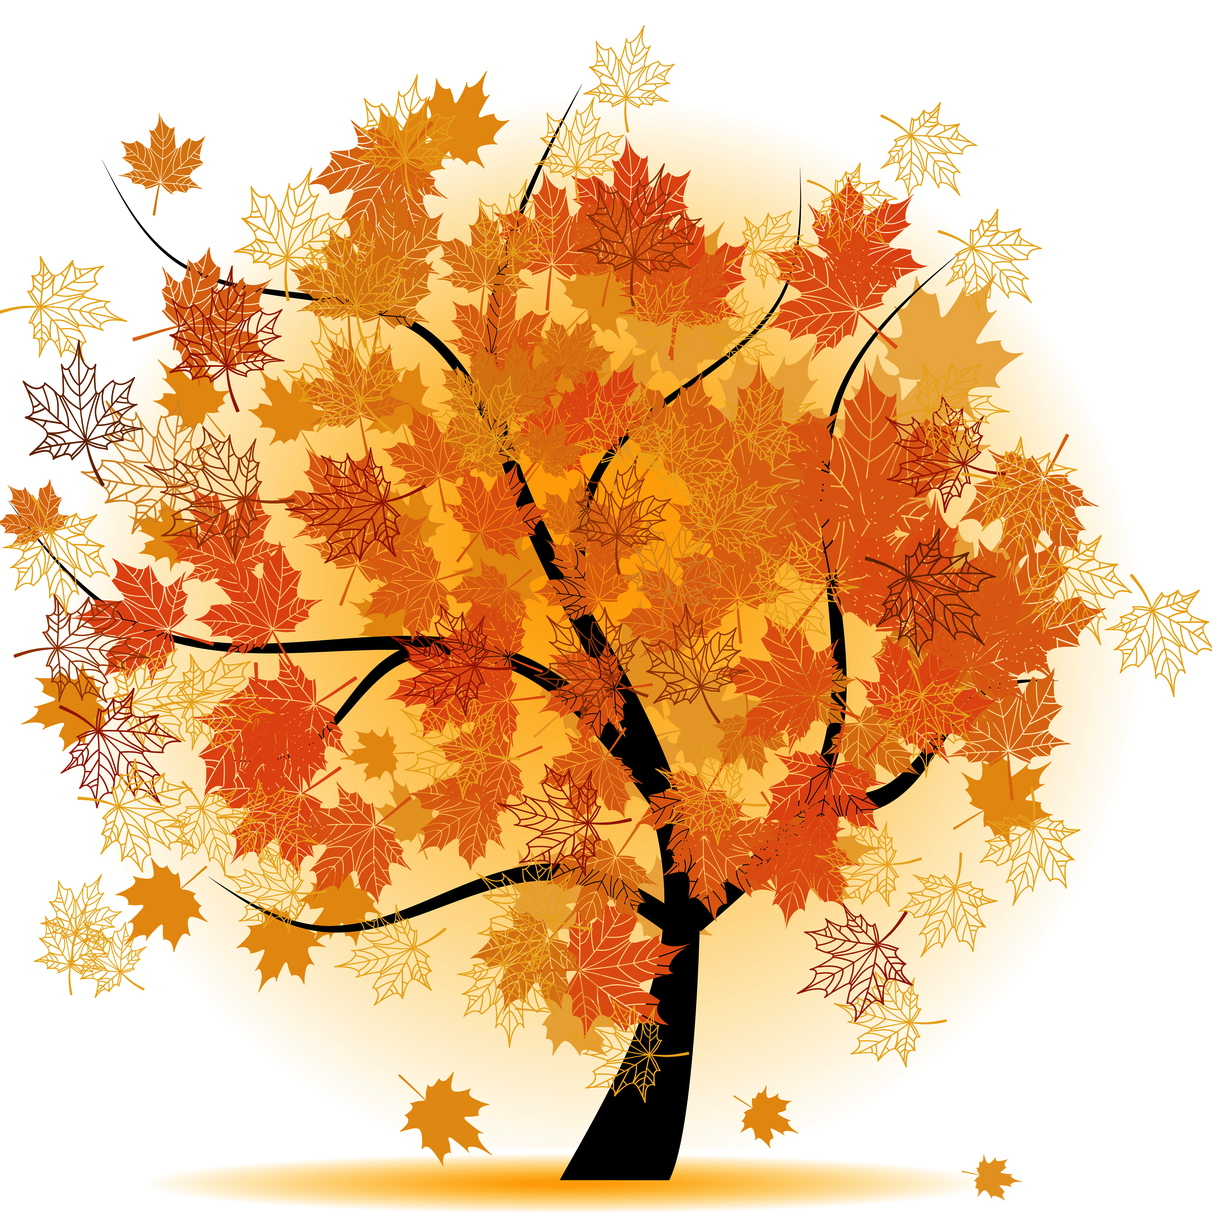 Maple tree, autumn leaf fall.jpg